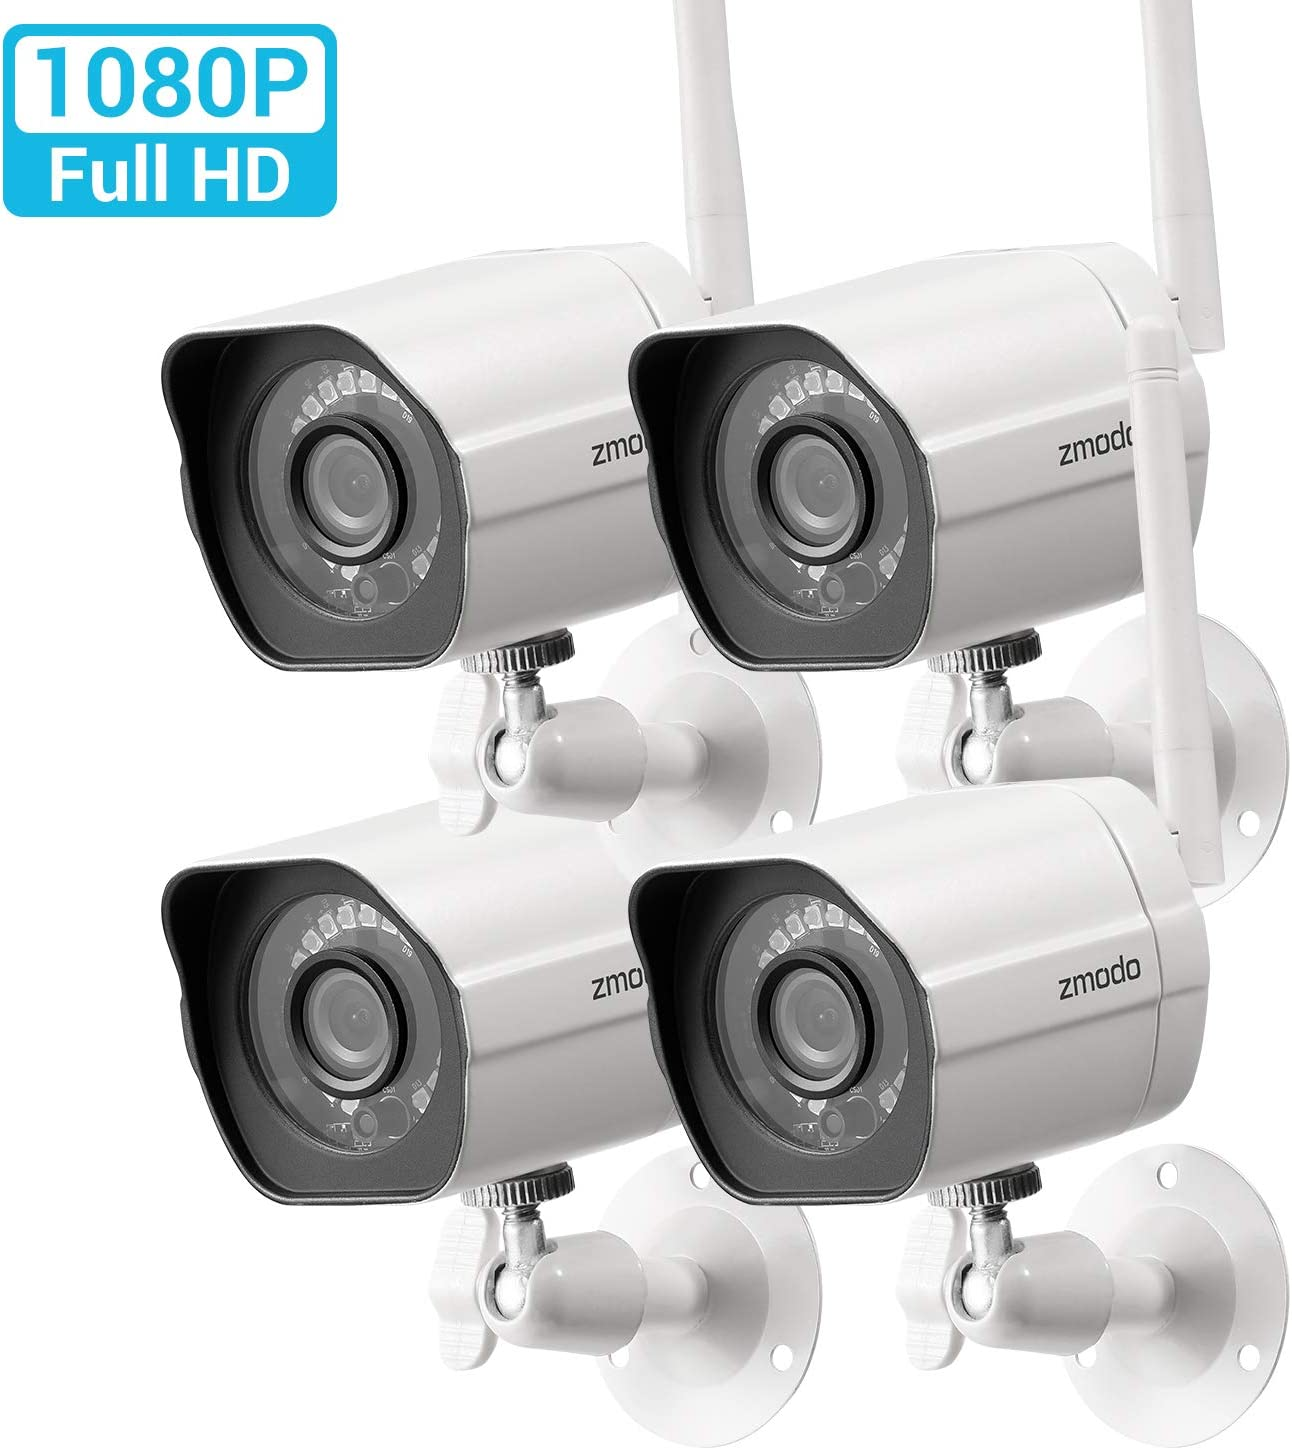 4G wireless security cameras systems